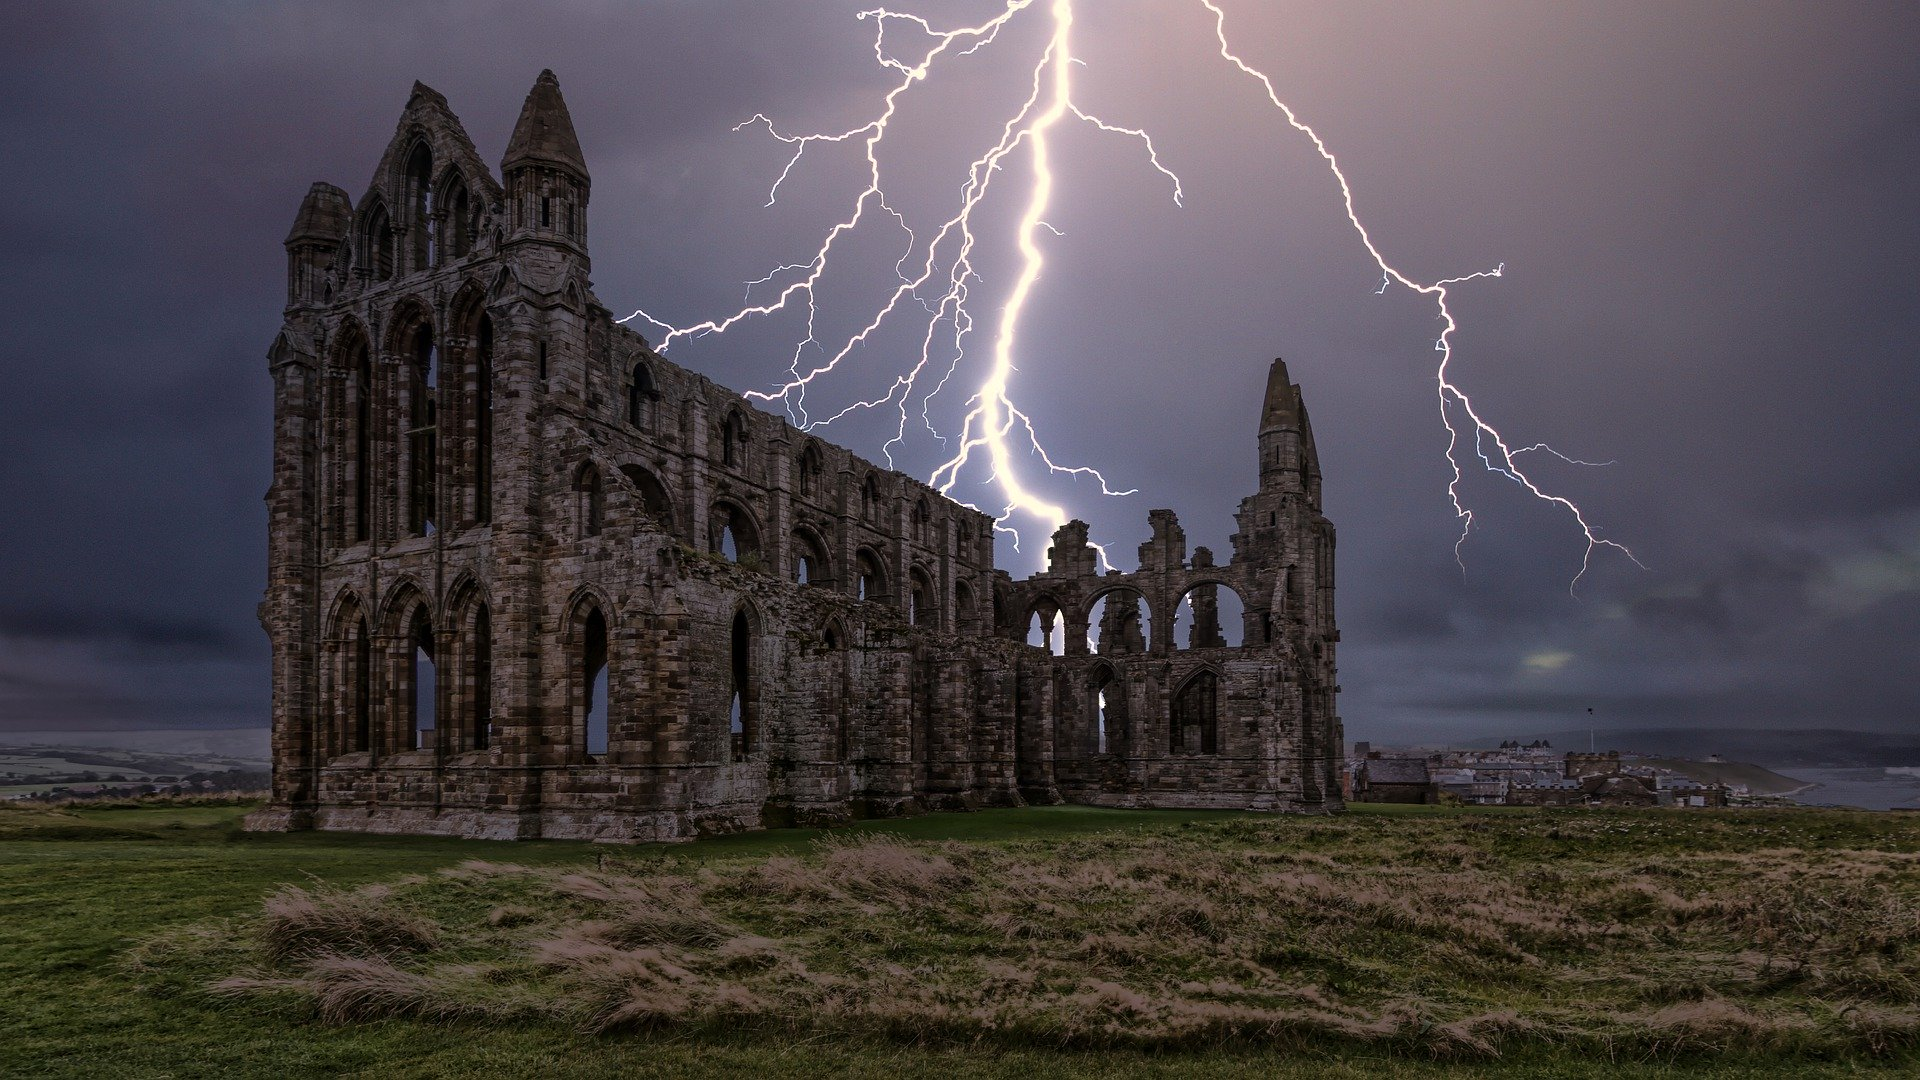 Whitby Abbey with a lightening strike behind it